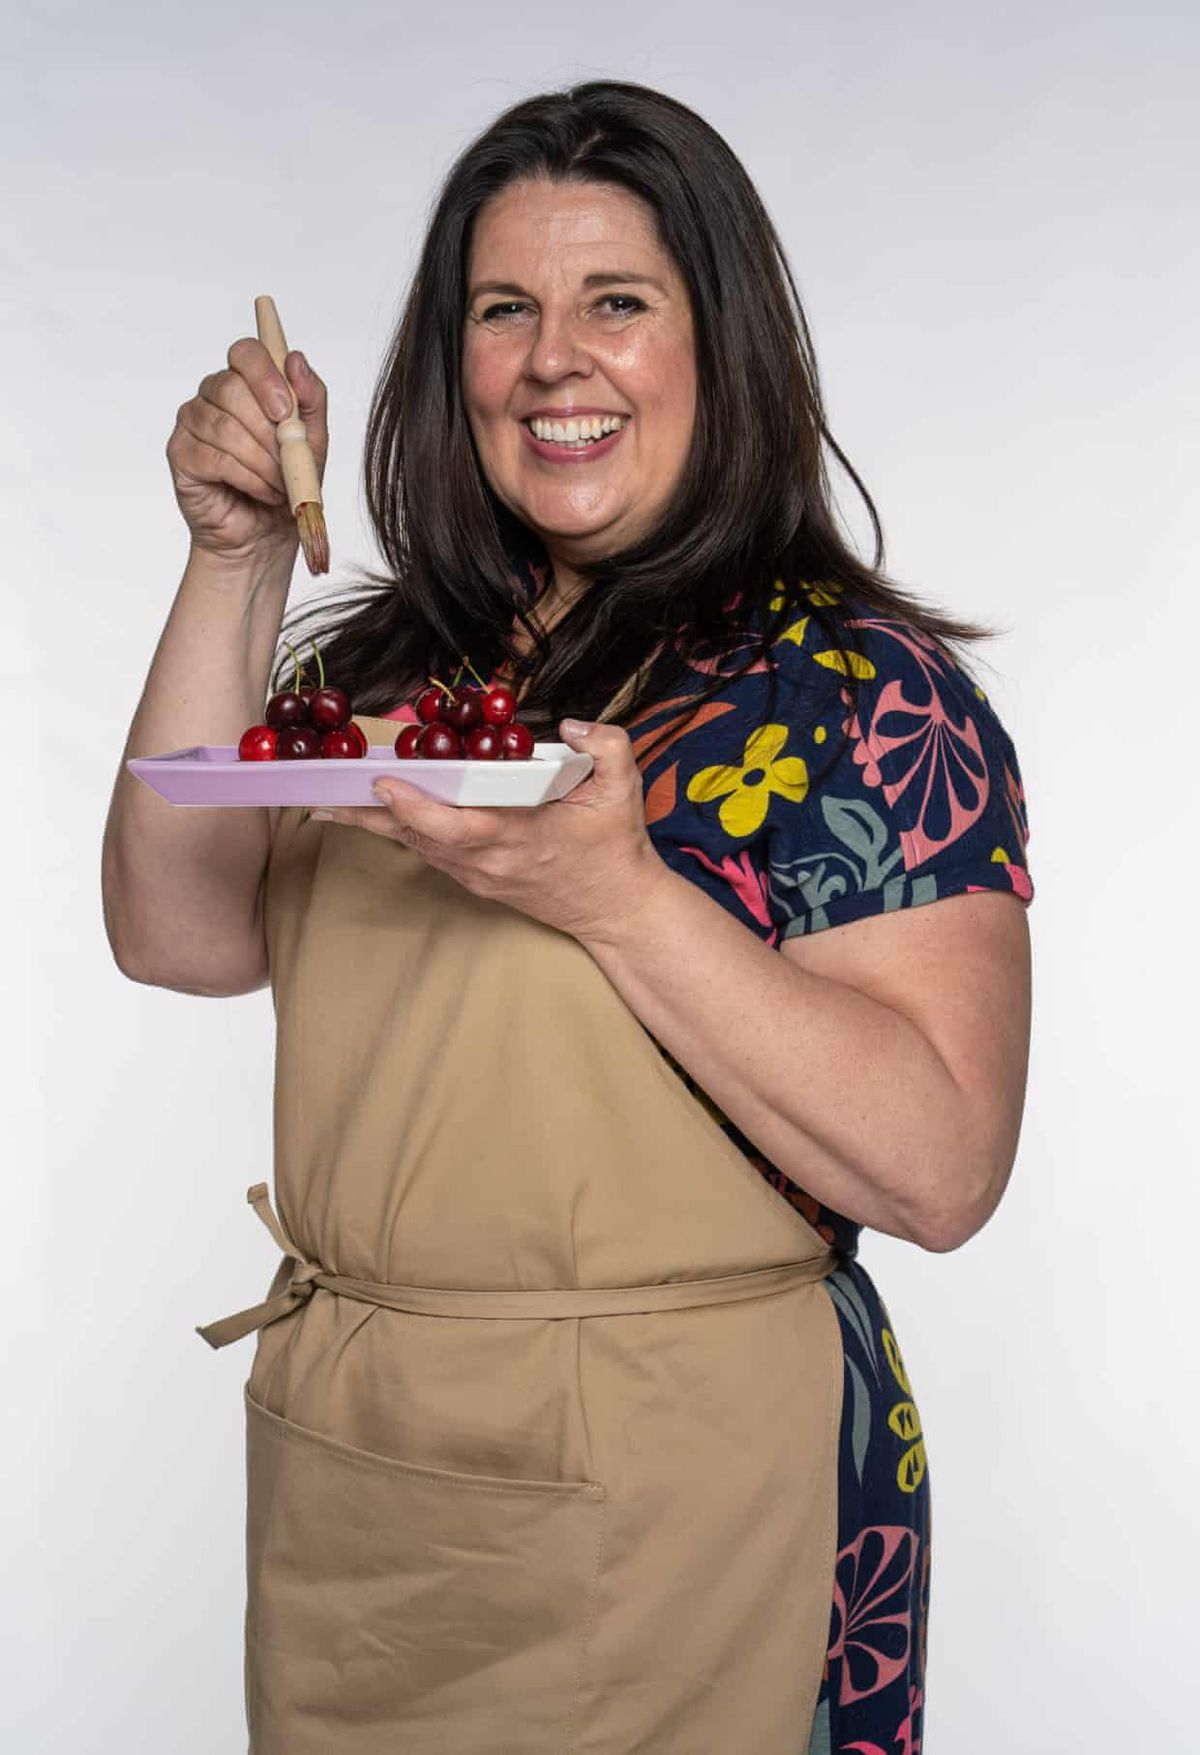 Great British Bake Off 2021 contestant TK, who will compete on GBBO this year